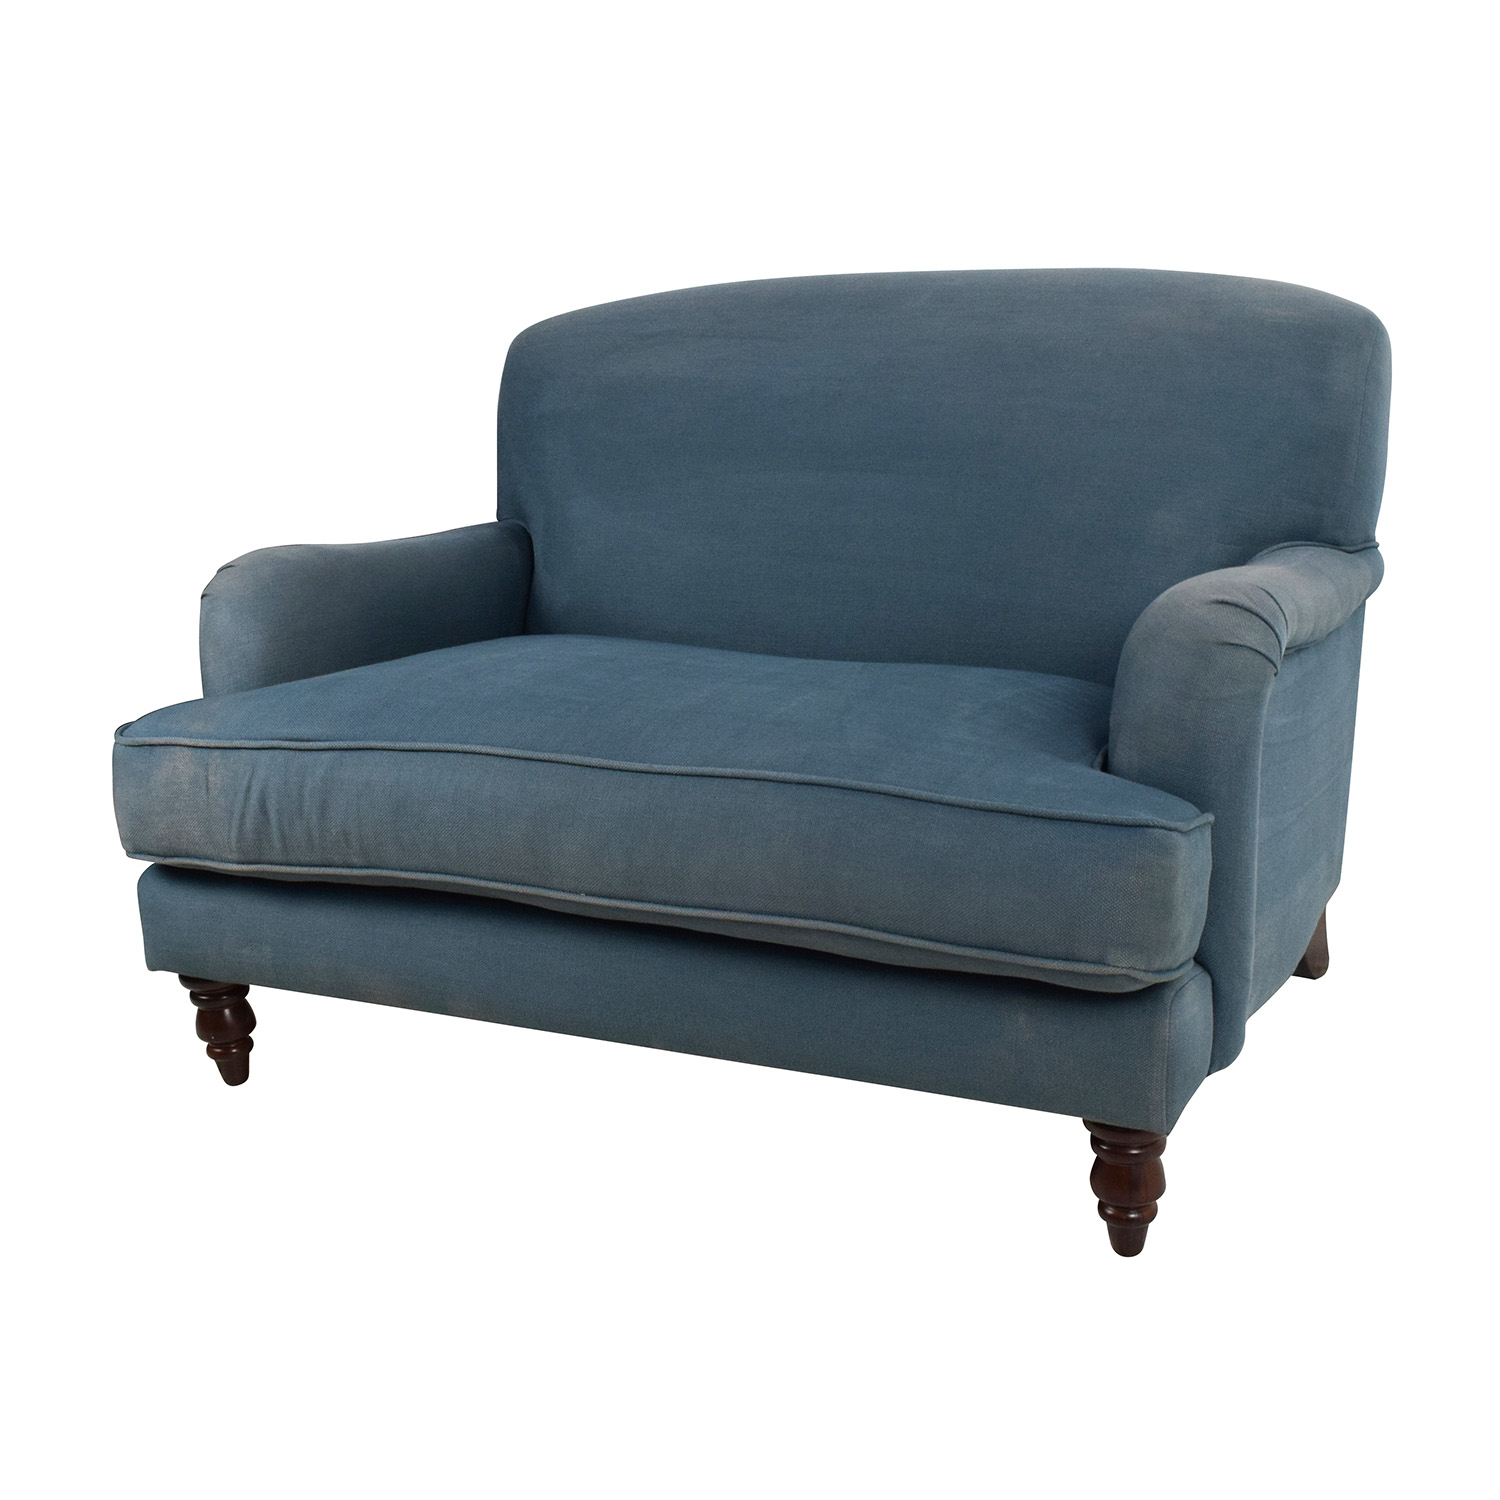 Made Sofa Shop 85 Off Custom Made Blue Loveseat Sofas